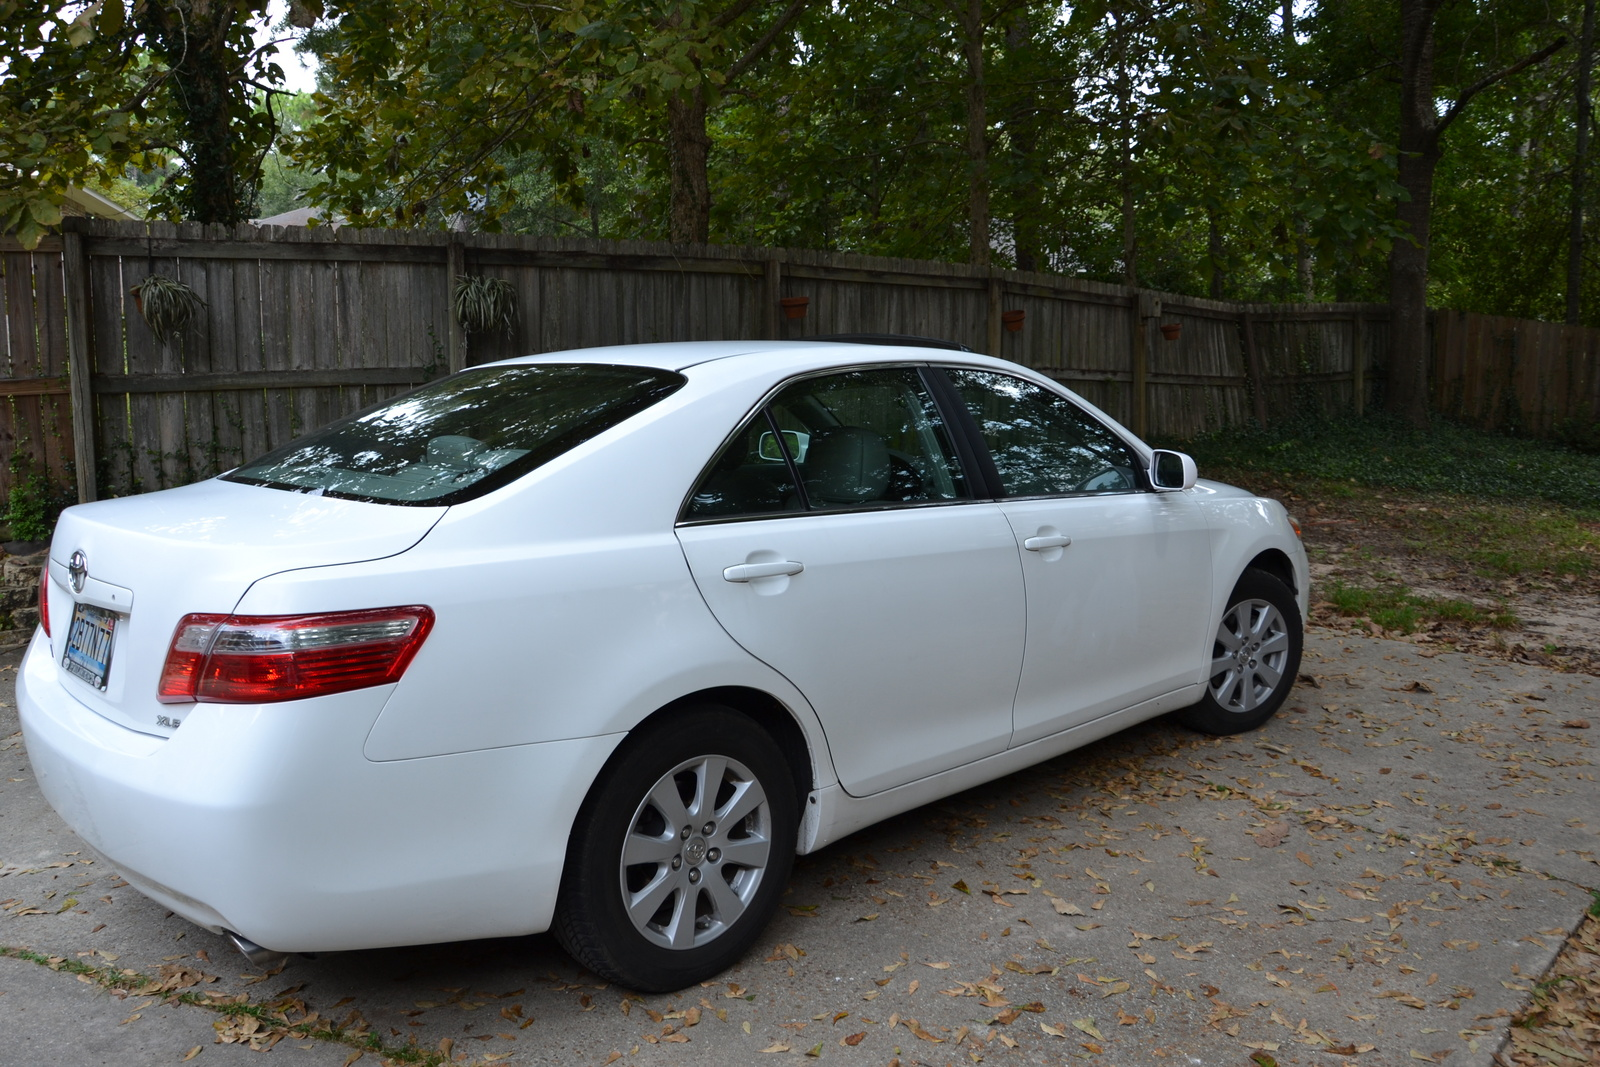 toyota camry 2008 new price toyota cuts price of its camry hybrid for 2008 2008 toyota camry. Black Bedroom Furniture Sets. Home Design Ideas